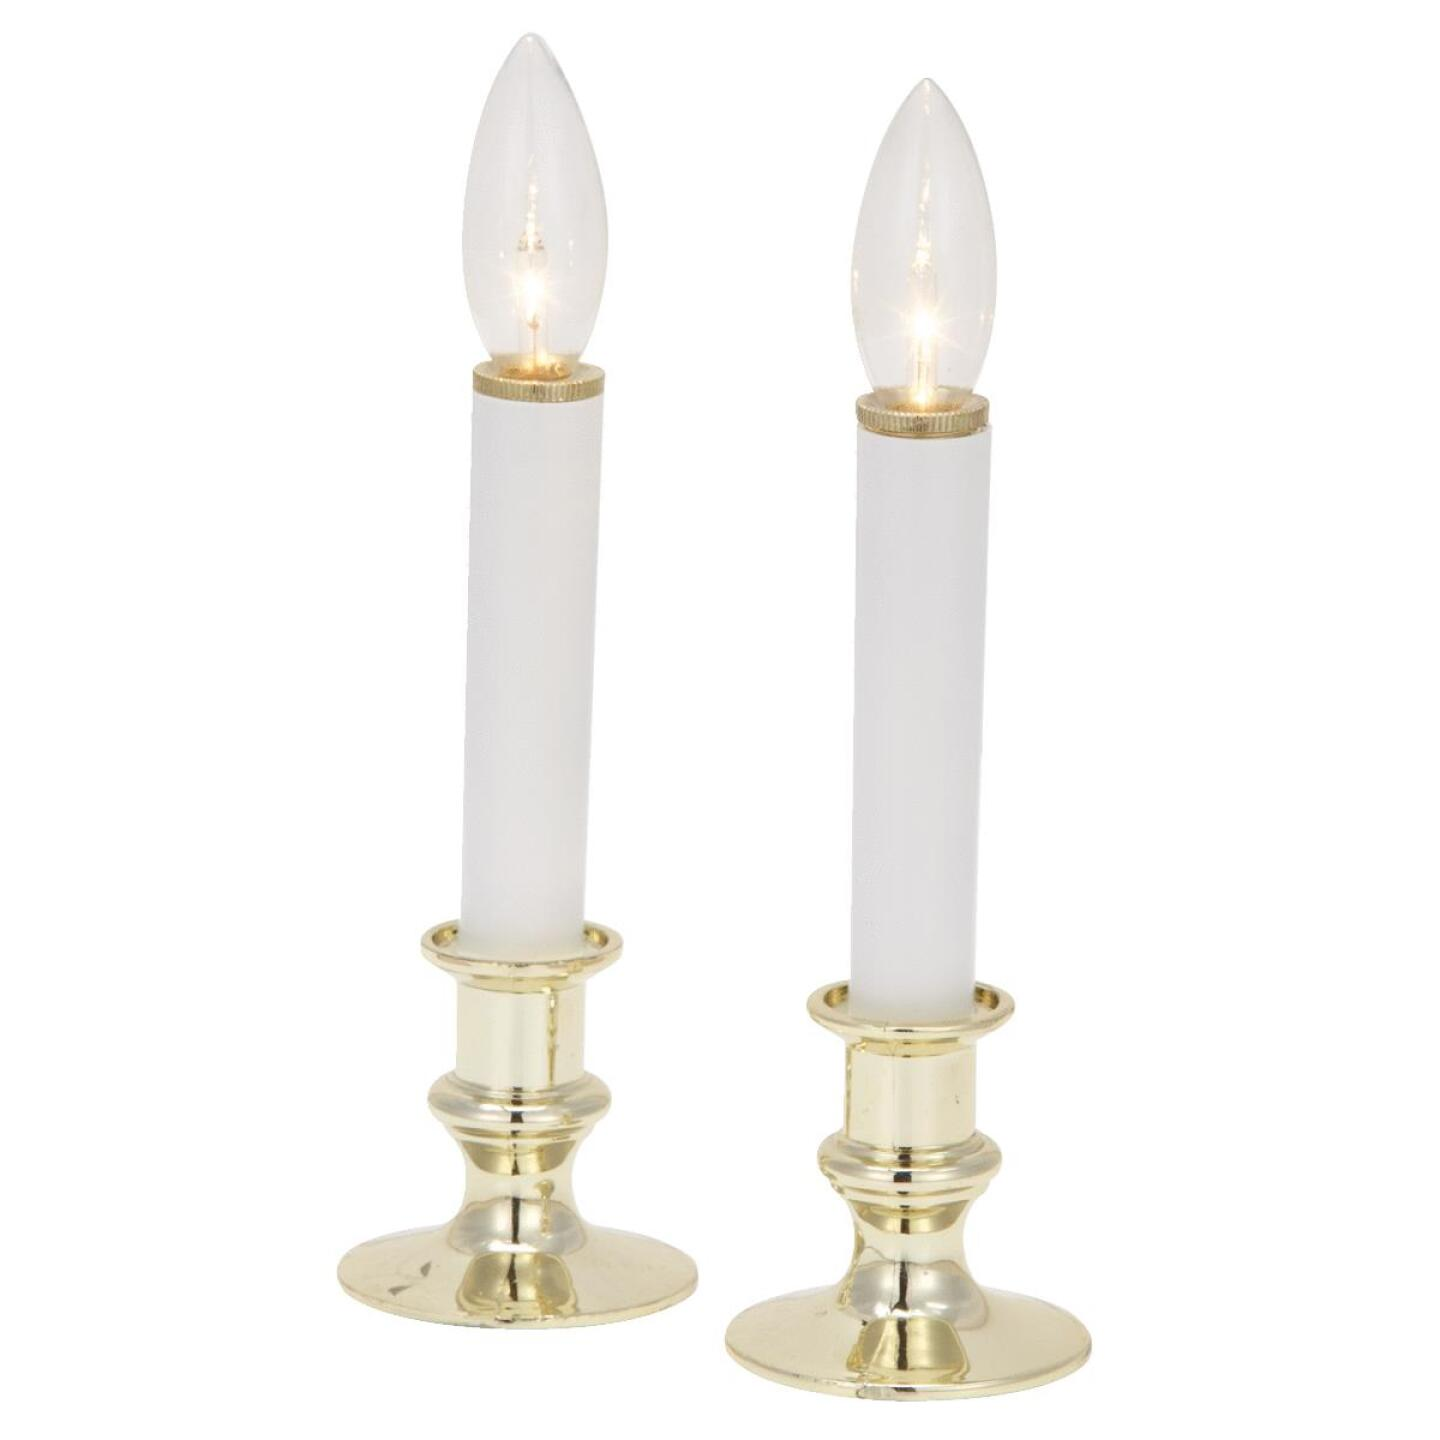 J Hofert 8.5 In. H. x 2.5 In. Dia. Gold Battery Operated Candle (2-Piece) Image 1